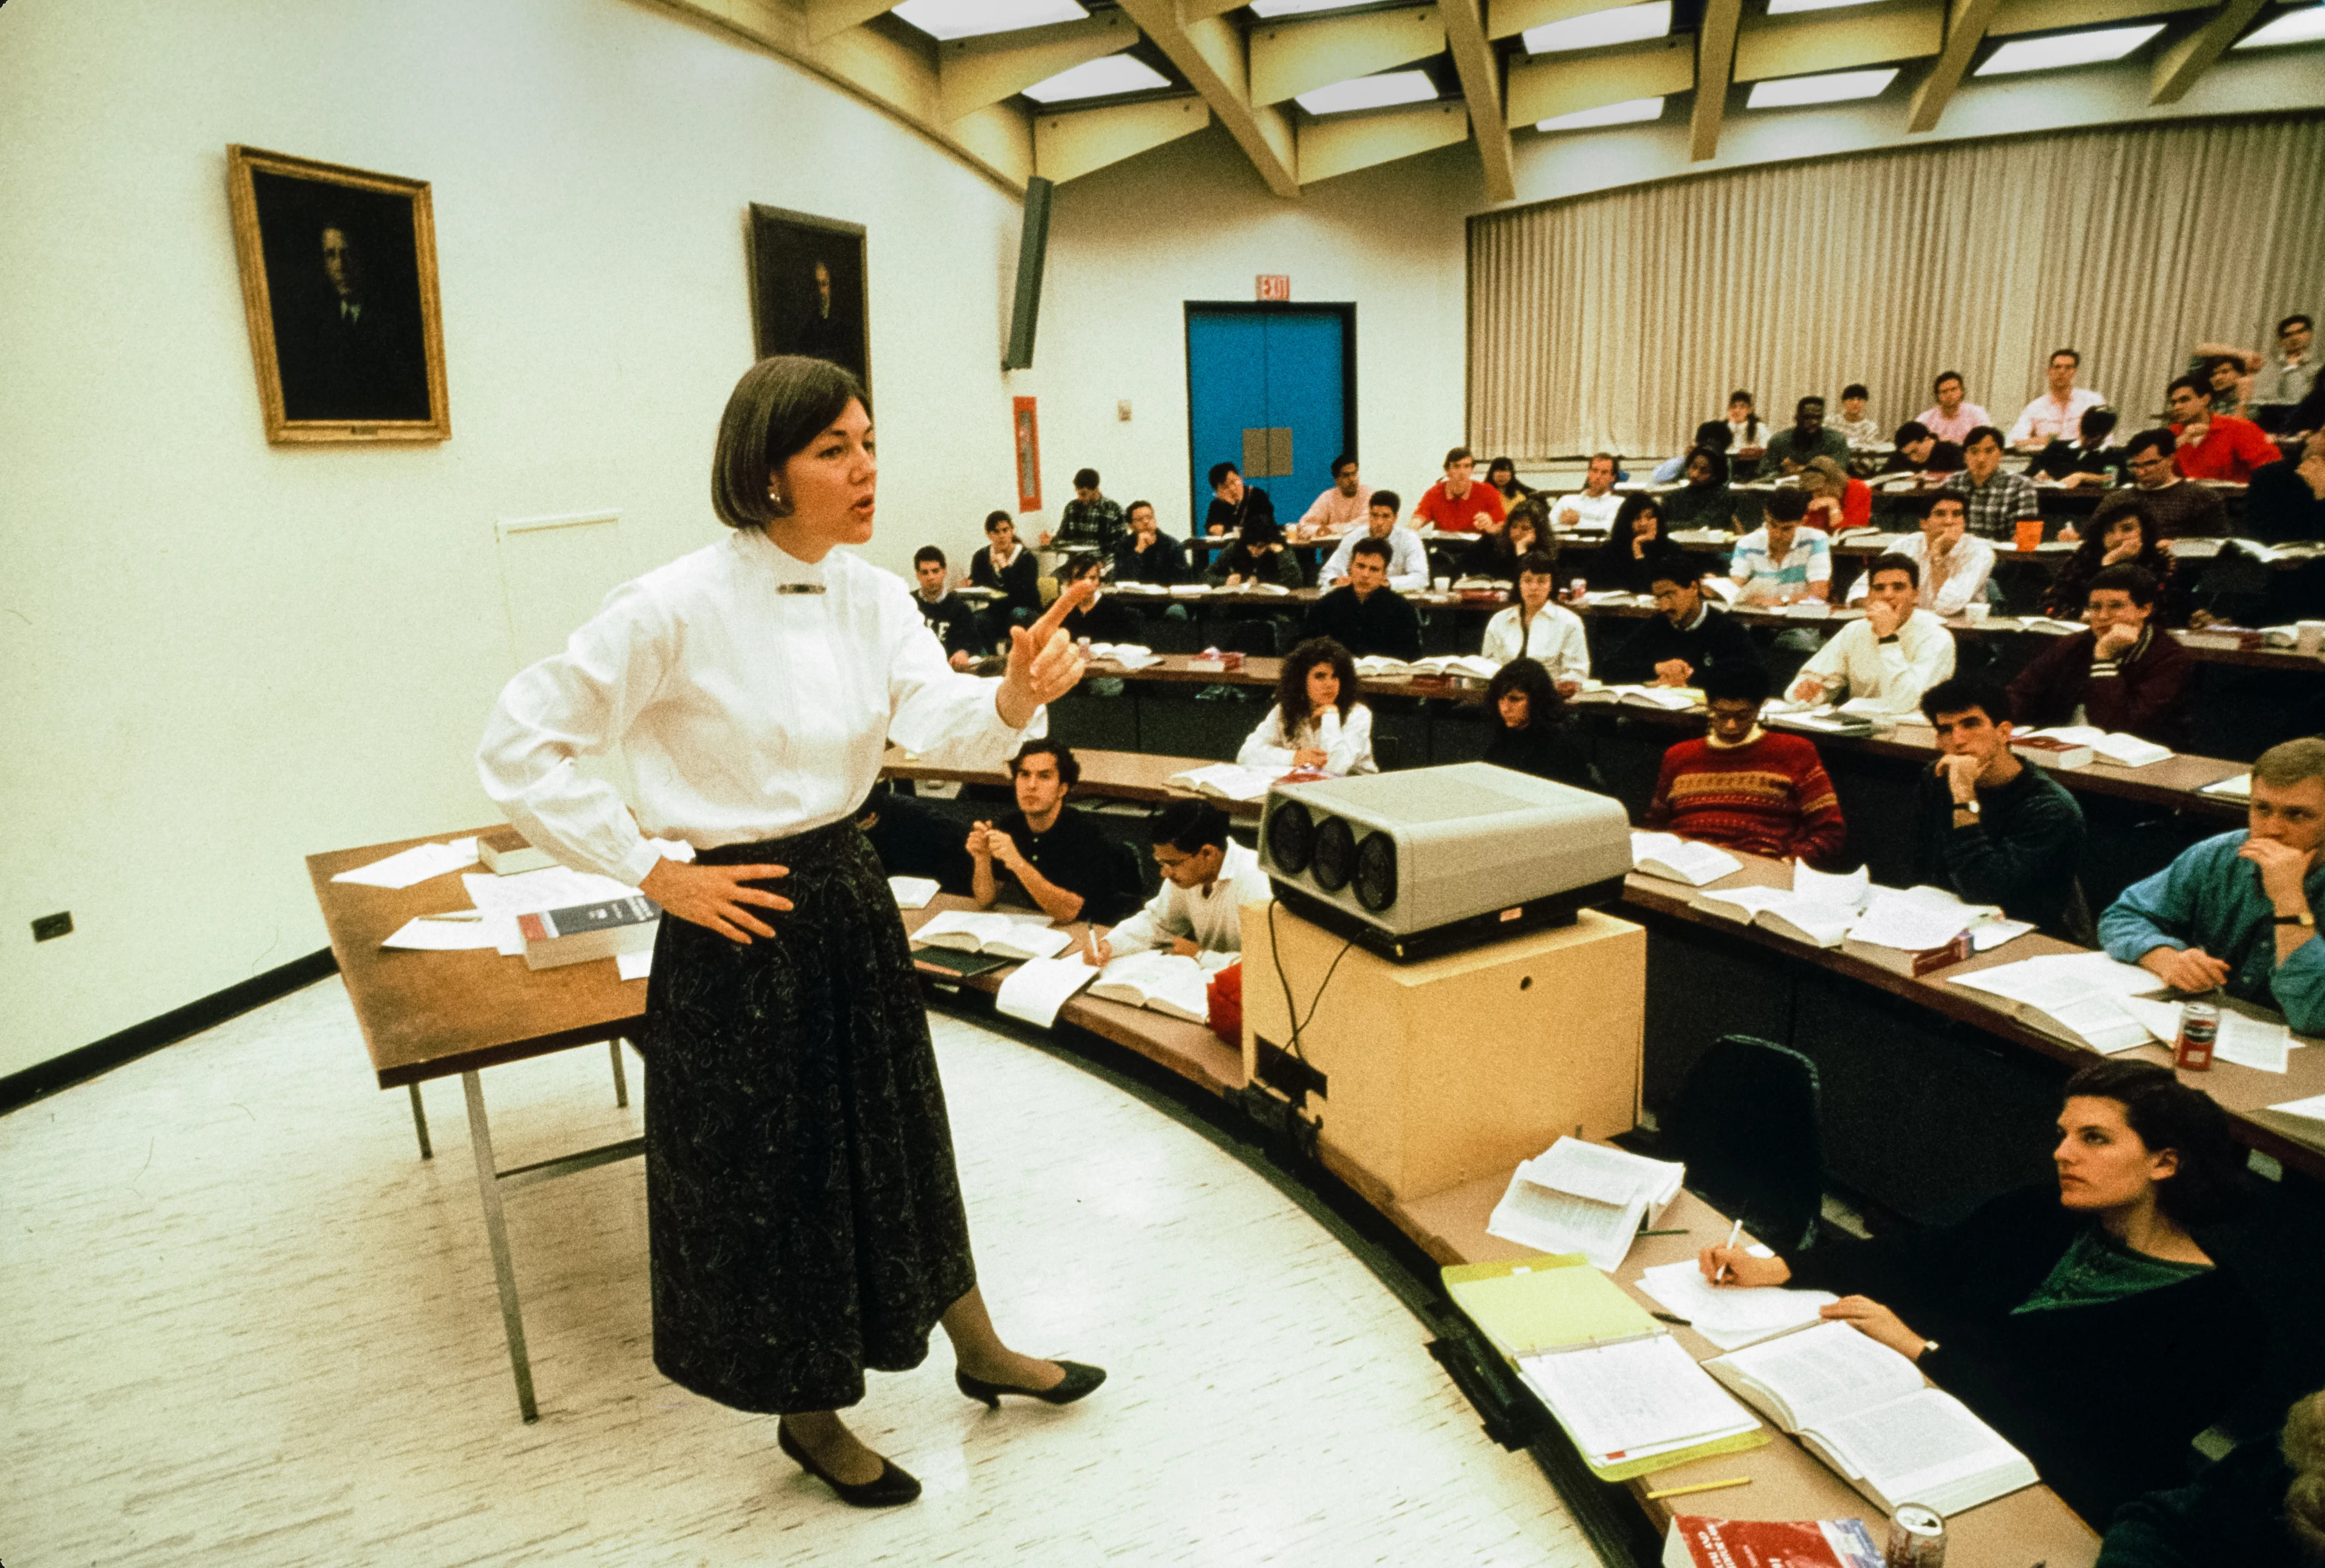 American academic (and future US Senator) Professor Elizabeth Warren teaches an unspecified class at University of Pennsylvania Law School, Philadelphia, Pennsylvania, early 1990s. (Photo by Leif Skoogfors/Corbis via Getty Images)  -- For one time use with Tamari profile on Warren only